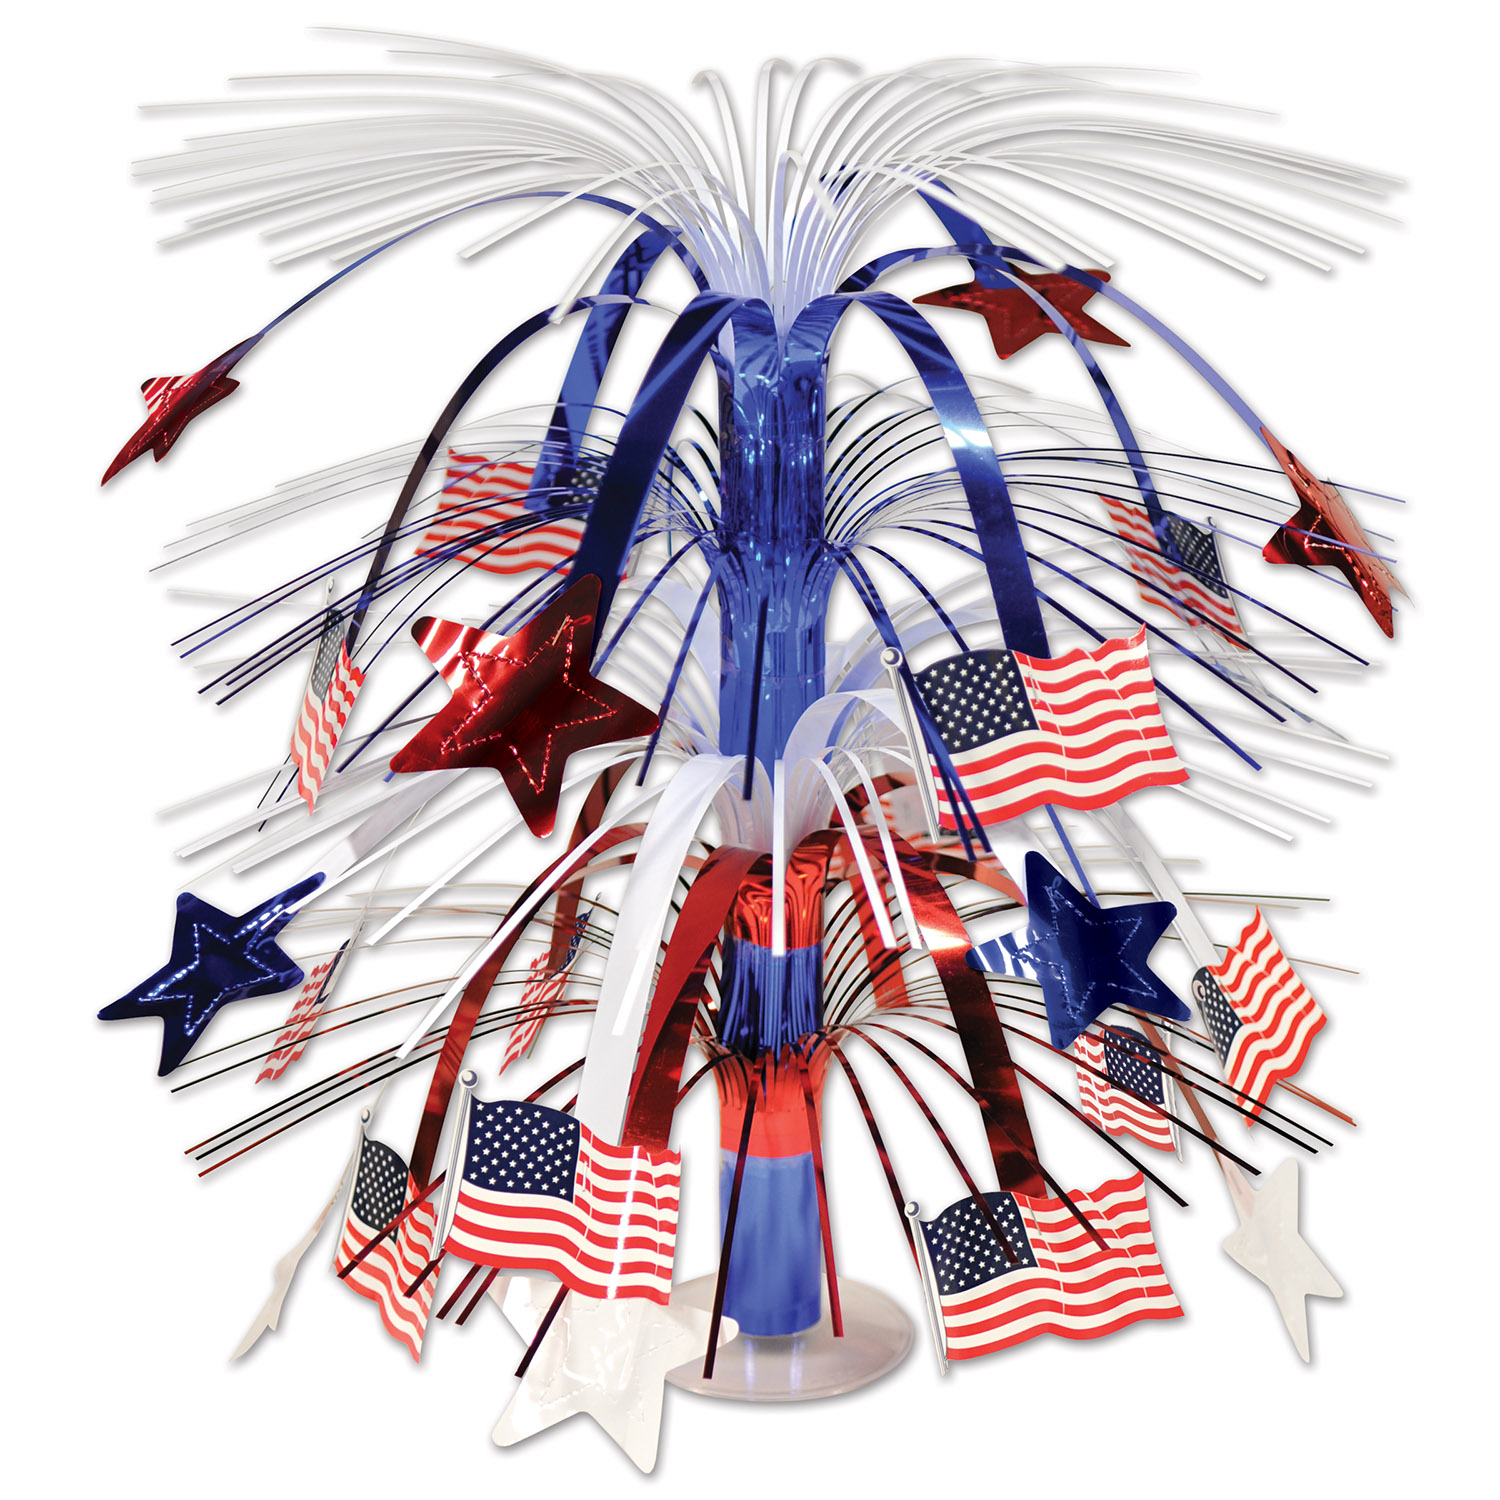 Flag Cascade Centerpiece (Pack of 6) american, patriotic, flag, red, white, blue, centerpiece, cascade, metallic, 4th of July